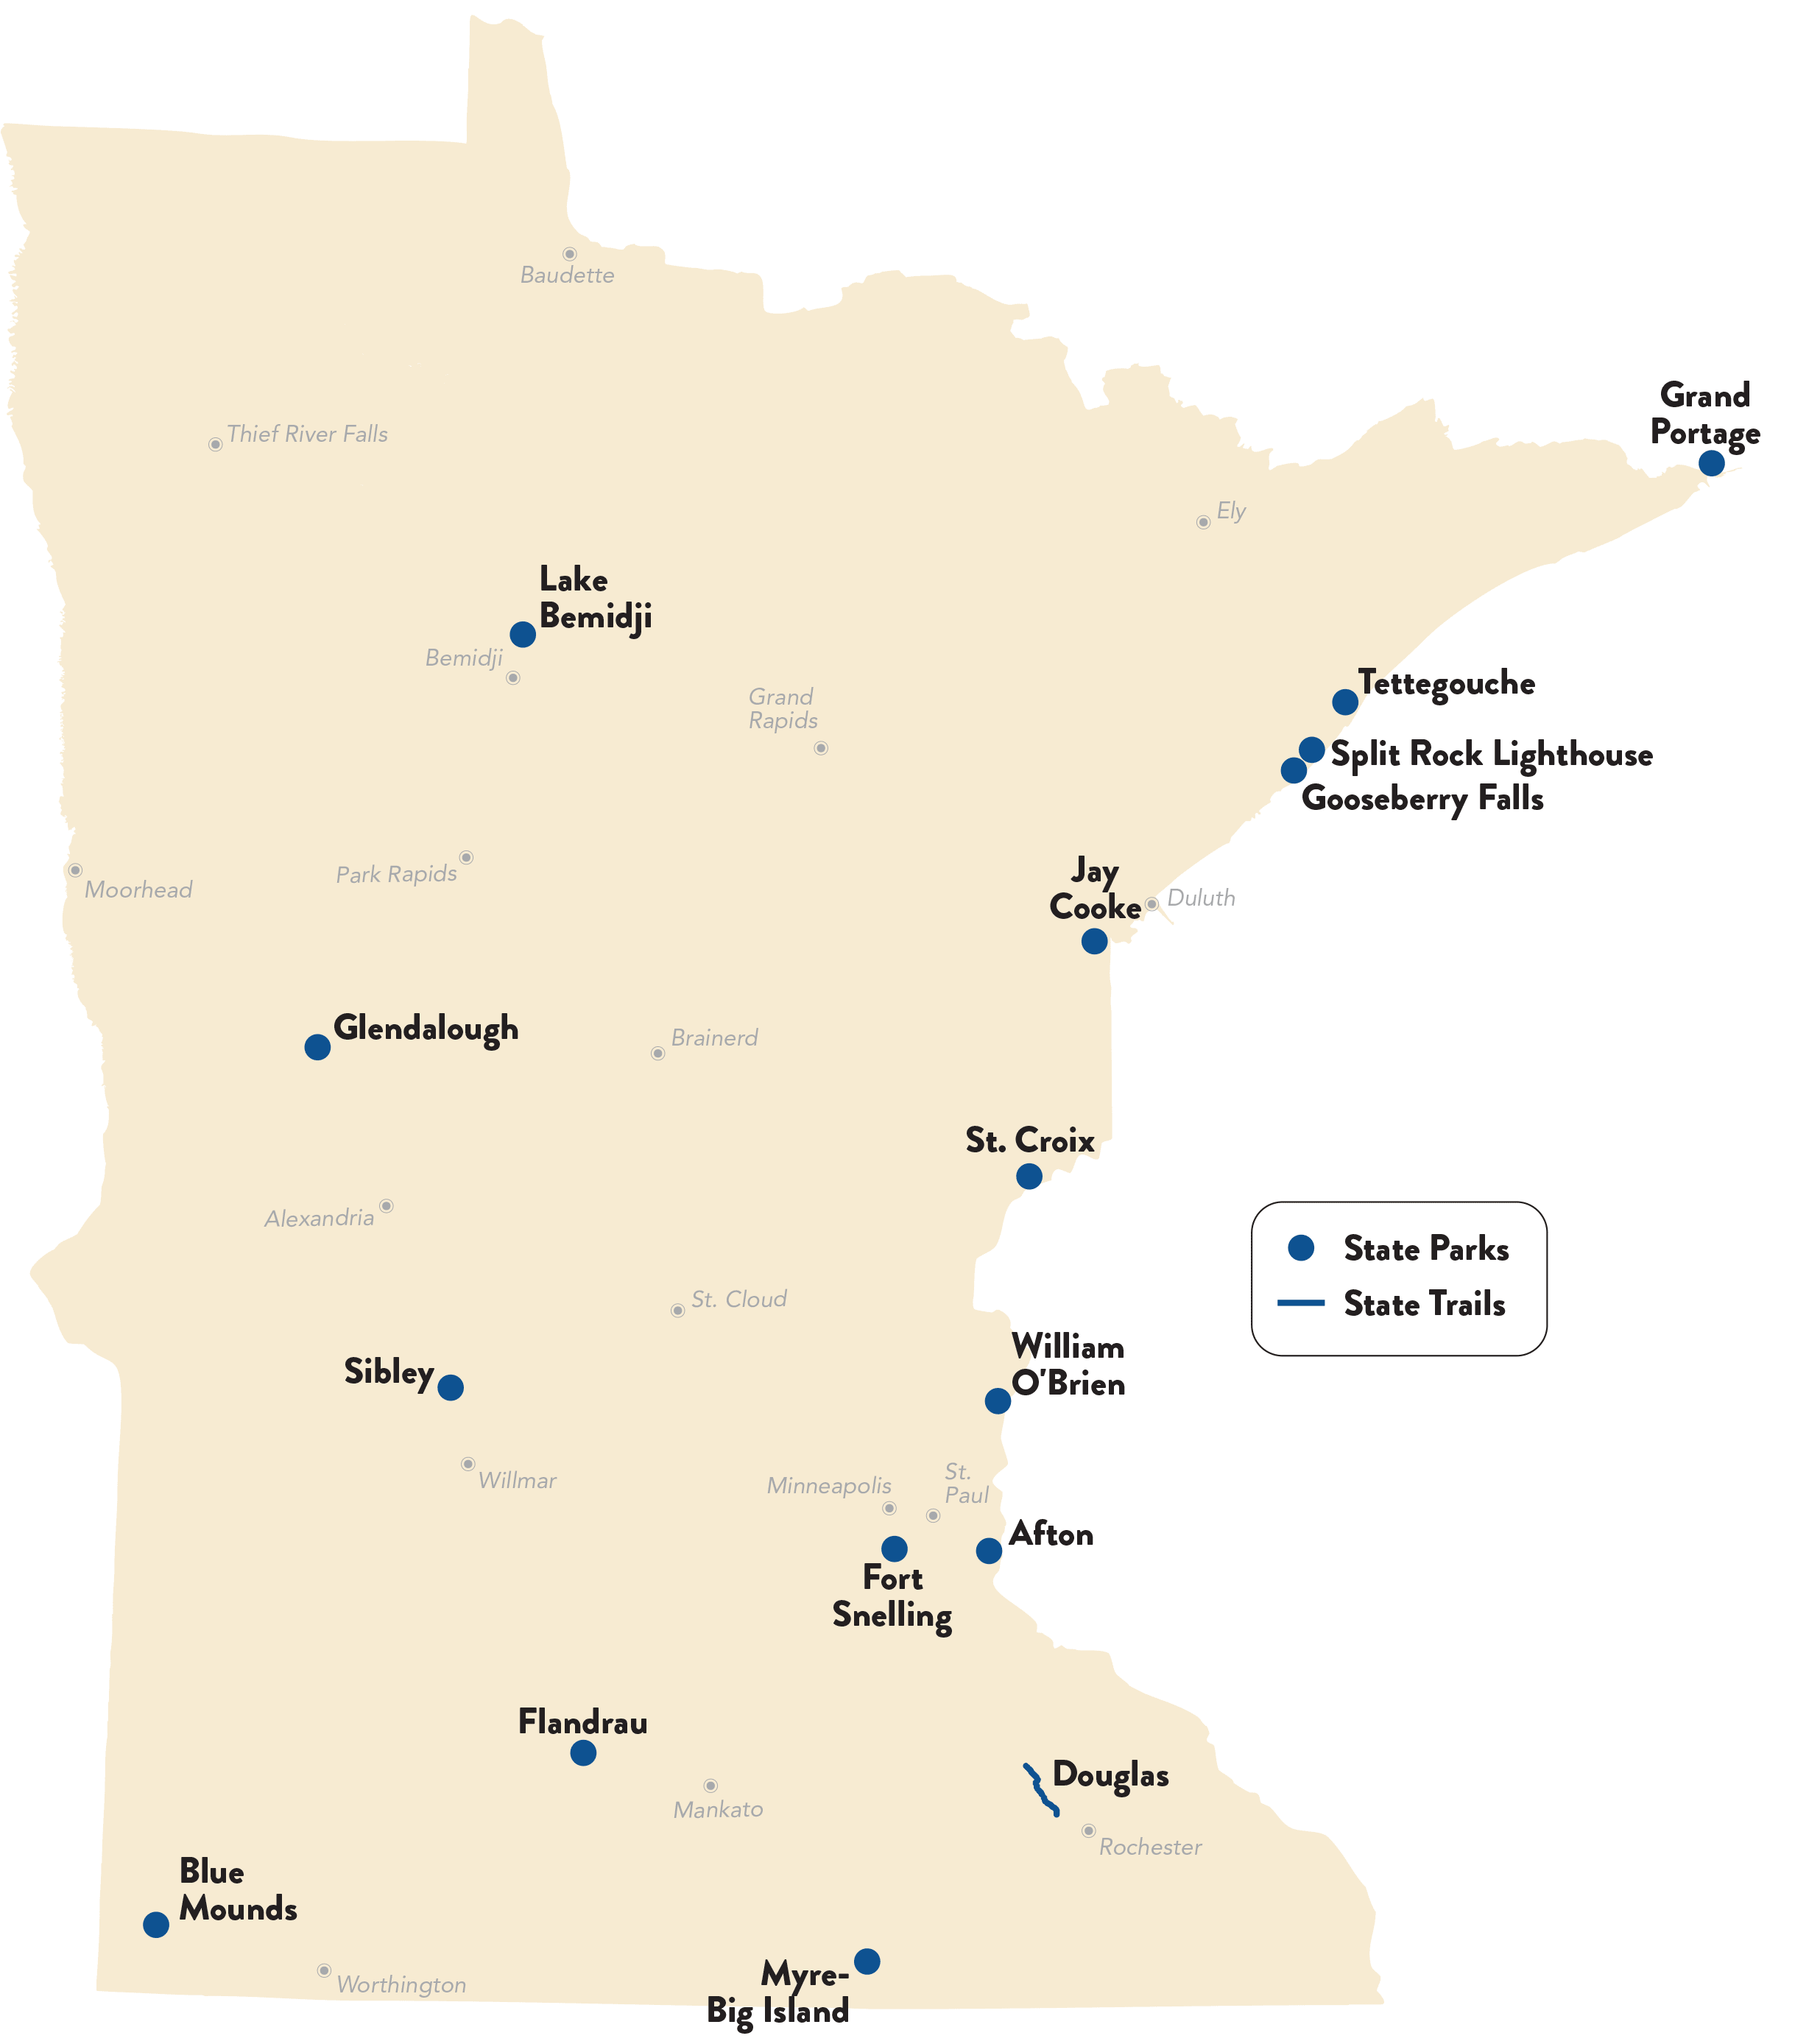 plowed or packed hiking trail locations in Minnesota